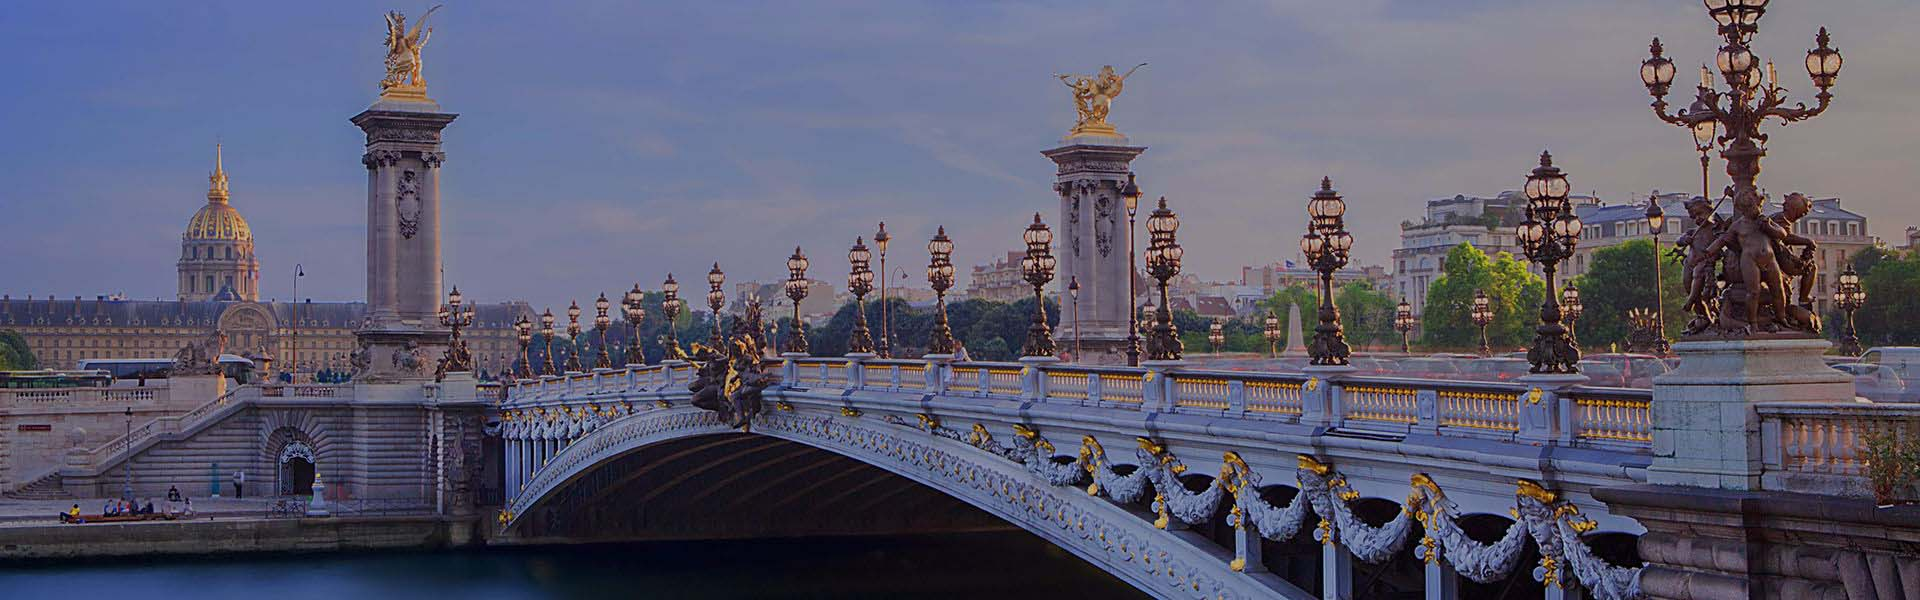 Pont Alexandre in Paris